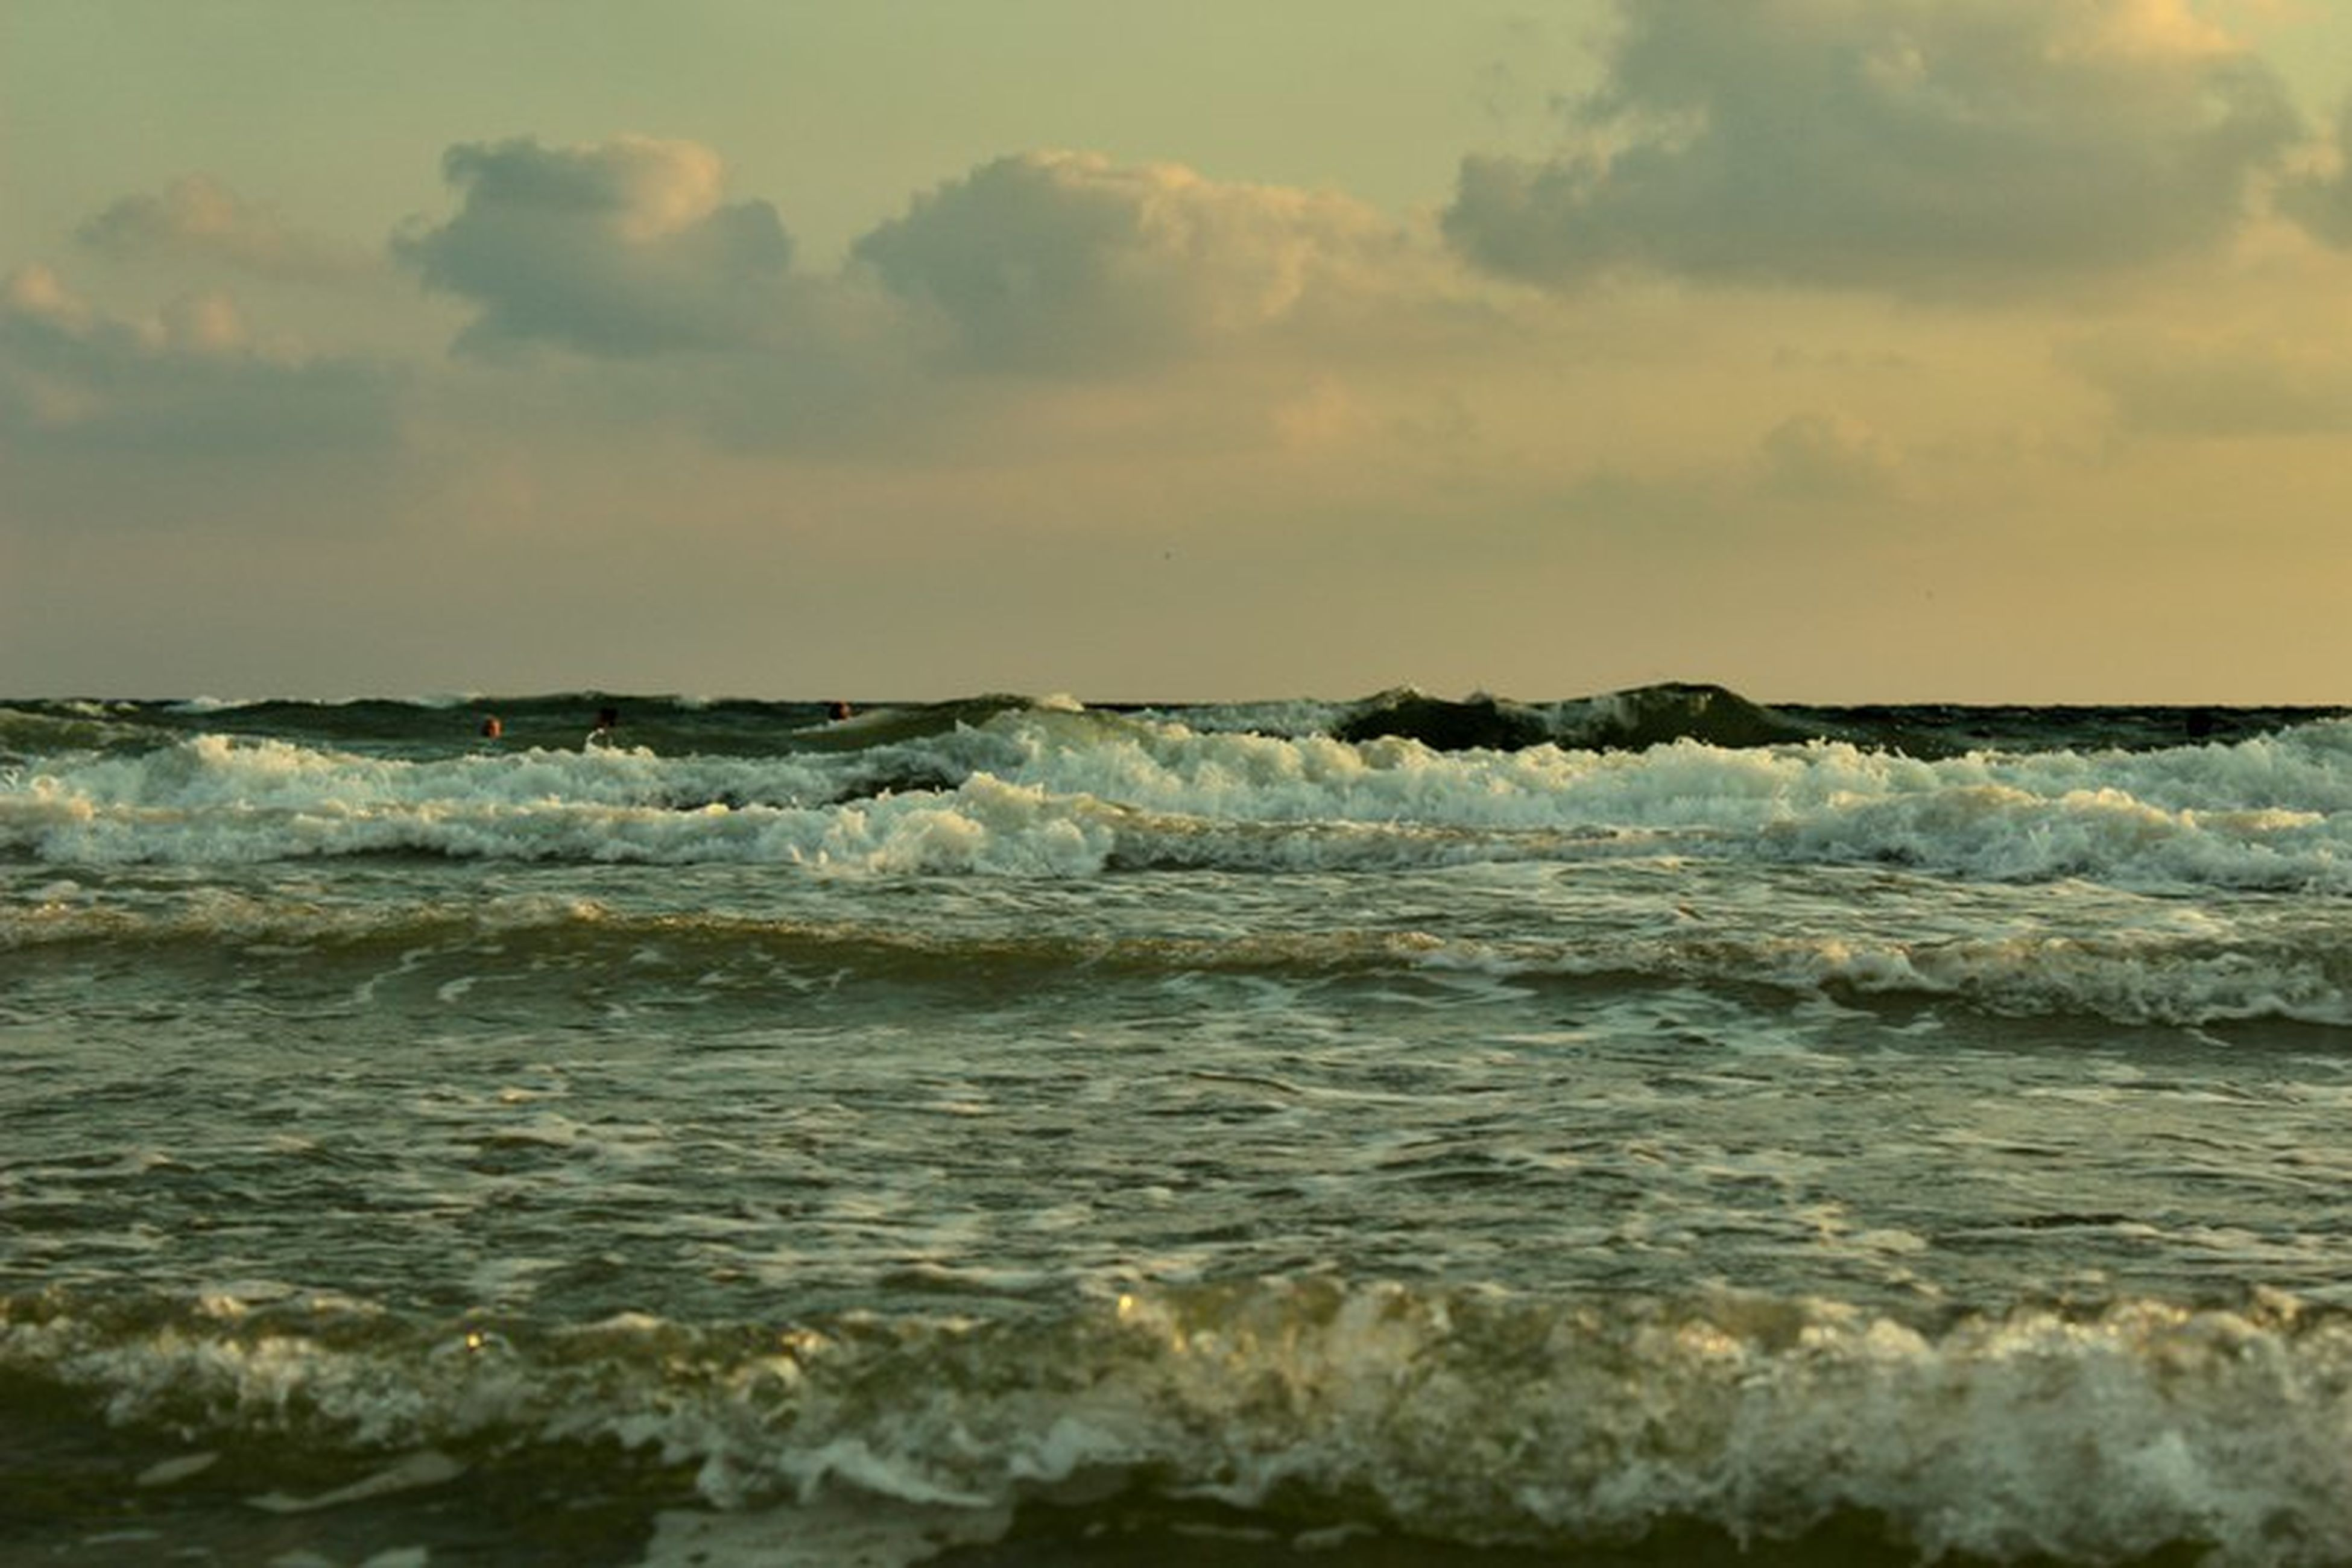 water, sea, sky, wave, scenics, horizon over water, sunset, beauty in nature, cloud - sky, nature, tranquil scene, tranquility, idyllic, motion, shore, rock - object, rippled, outdoors, cloud, cloudy, no people, seascape, remote, non-urban scene, power in nature, ocean, weather